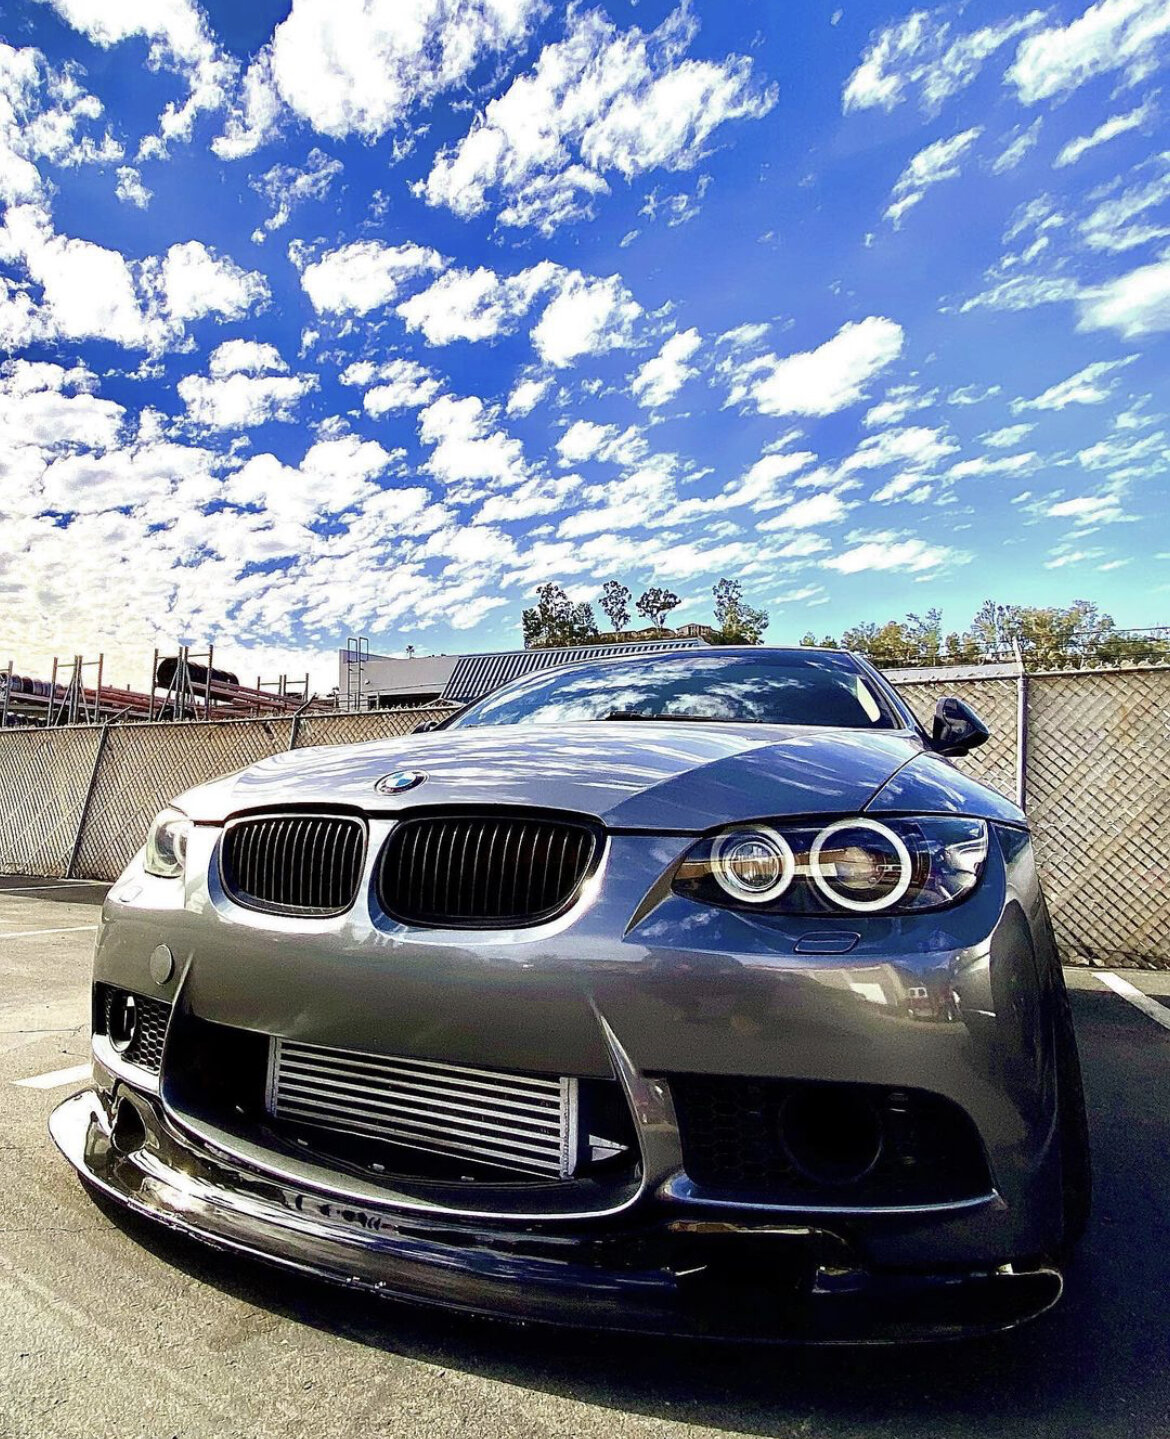 V3 Round Angel Eyes For Bmw 1 Series 3 Series E90 E92 E93 E82 Others Choose From Switchback White Or Rgbw Color Shifting Bavgruppe Designs